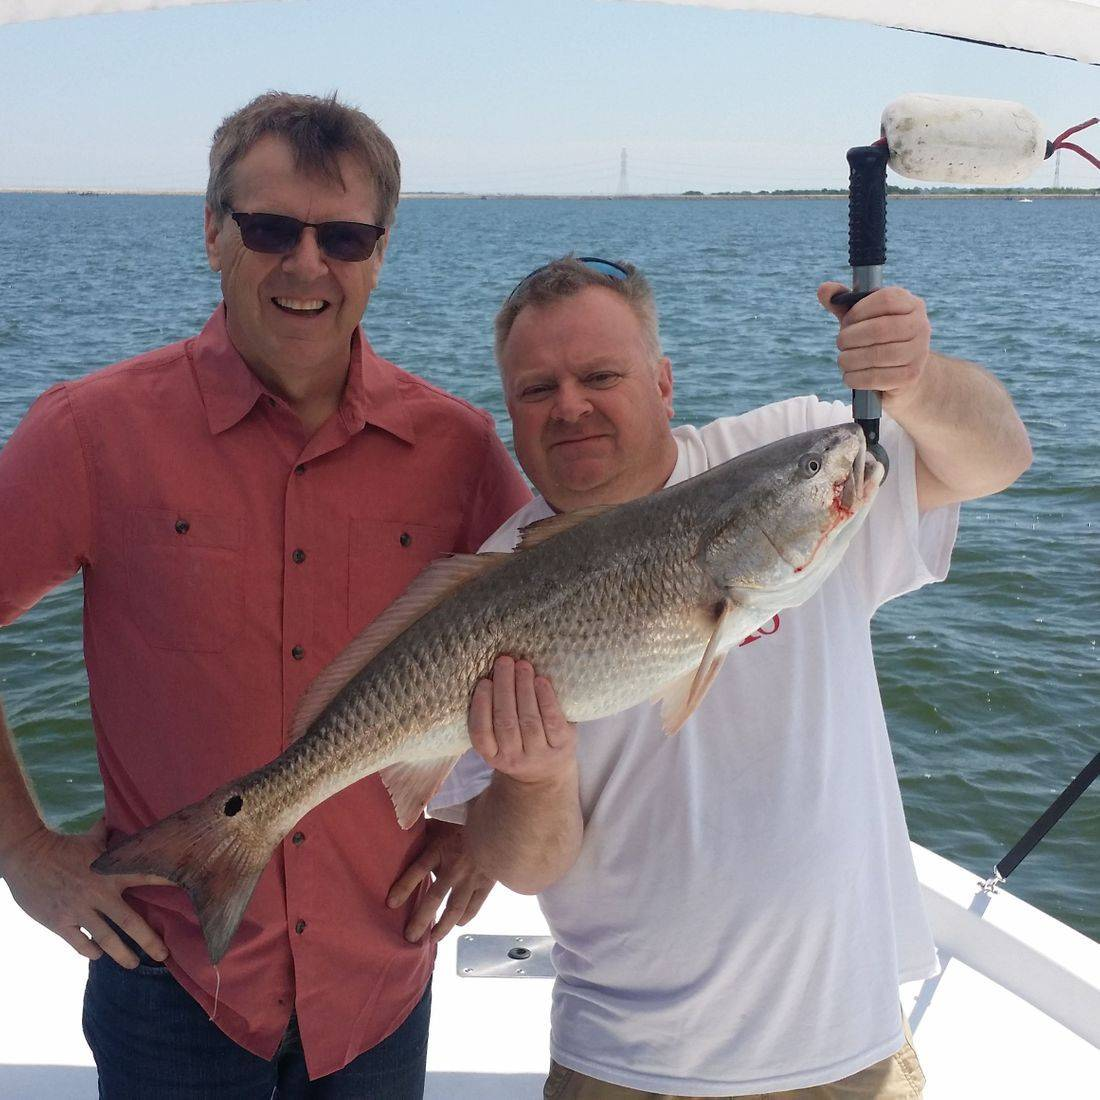 Friends, down to do some fishing, Redfish fishing at Brauning can be awesome. The schools are and challenging but rewarding. Fishing for Redfish in our San Antonio, Texas local lakes. Bones Fishing Guide Service provided an amazing fishing trip on the water and putting his clients on some Redfish.